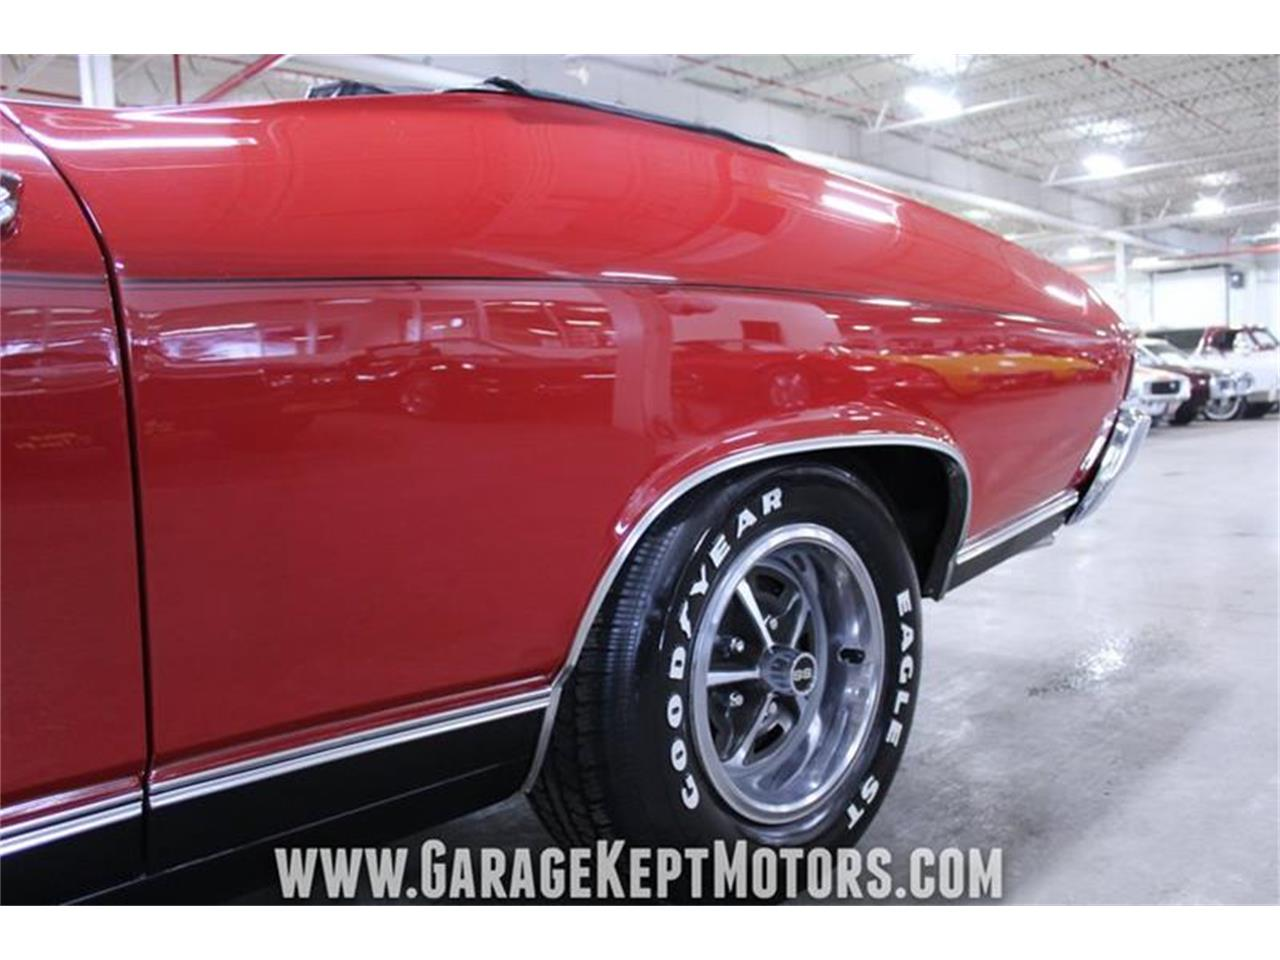 Large Picture of '68 Chevrolet Chevelle located in Grand Rapids Michigan - $49,900.00 - PWYE